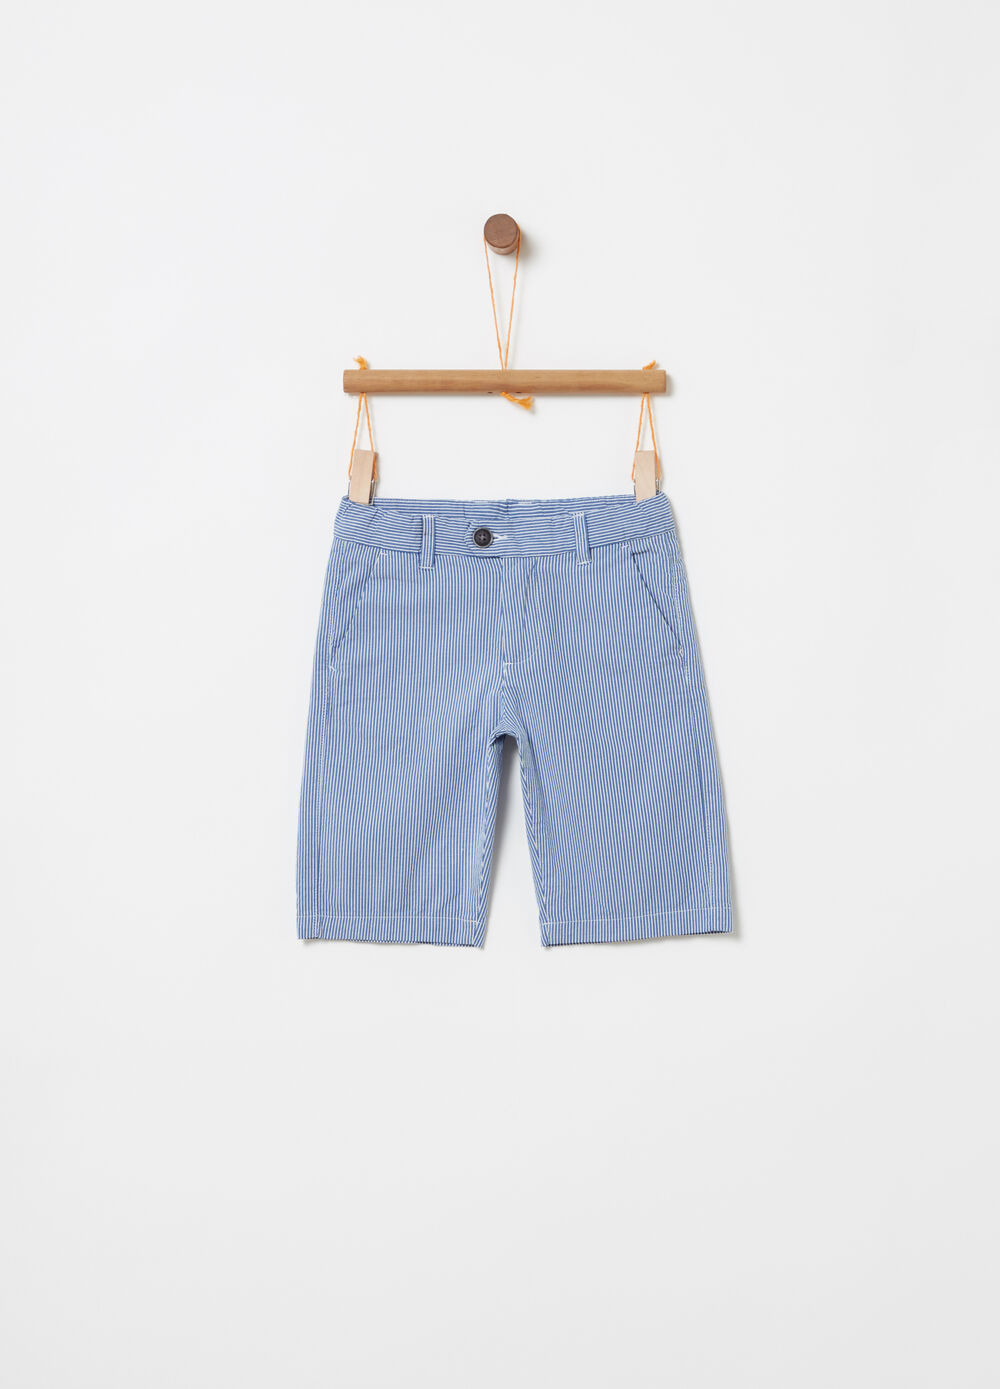 Yarn-dyed shorts with striped pockets